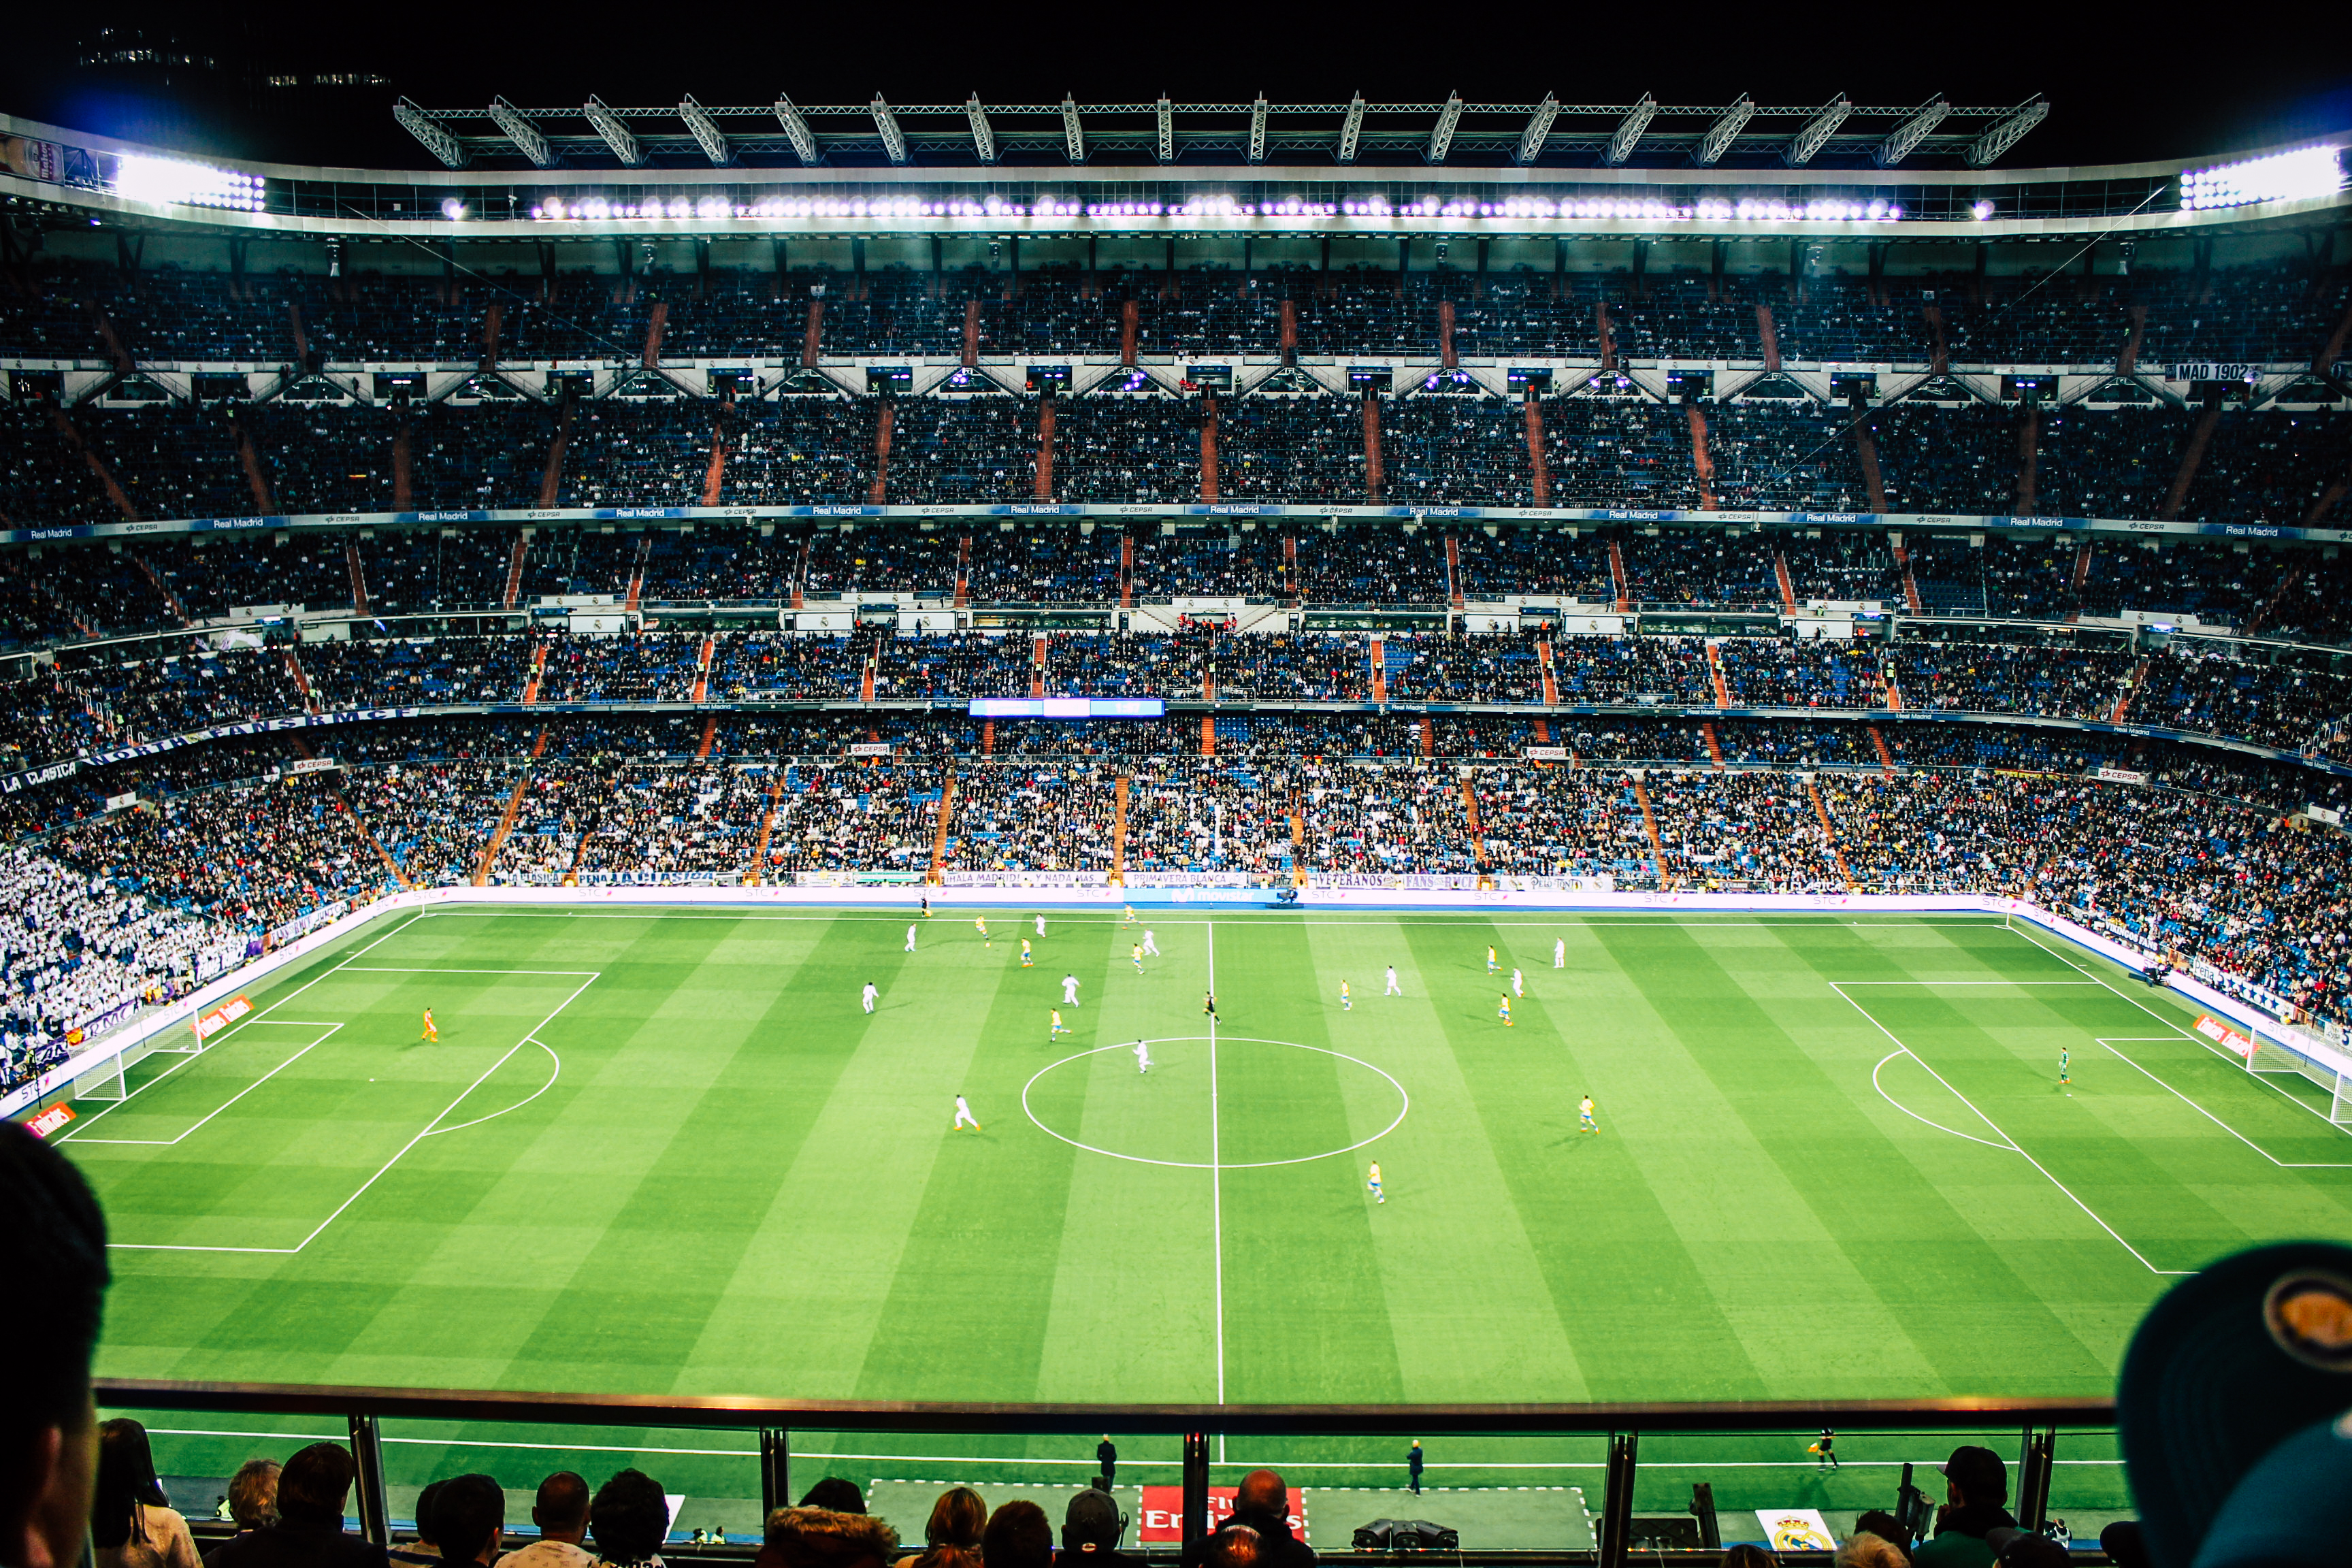 A picture of a packed football stadium